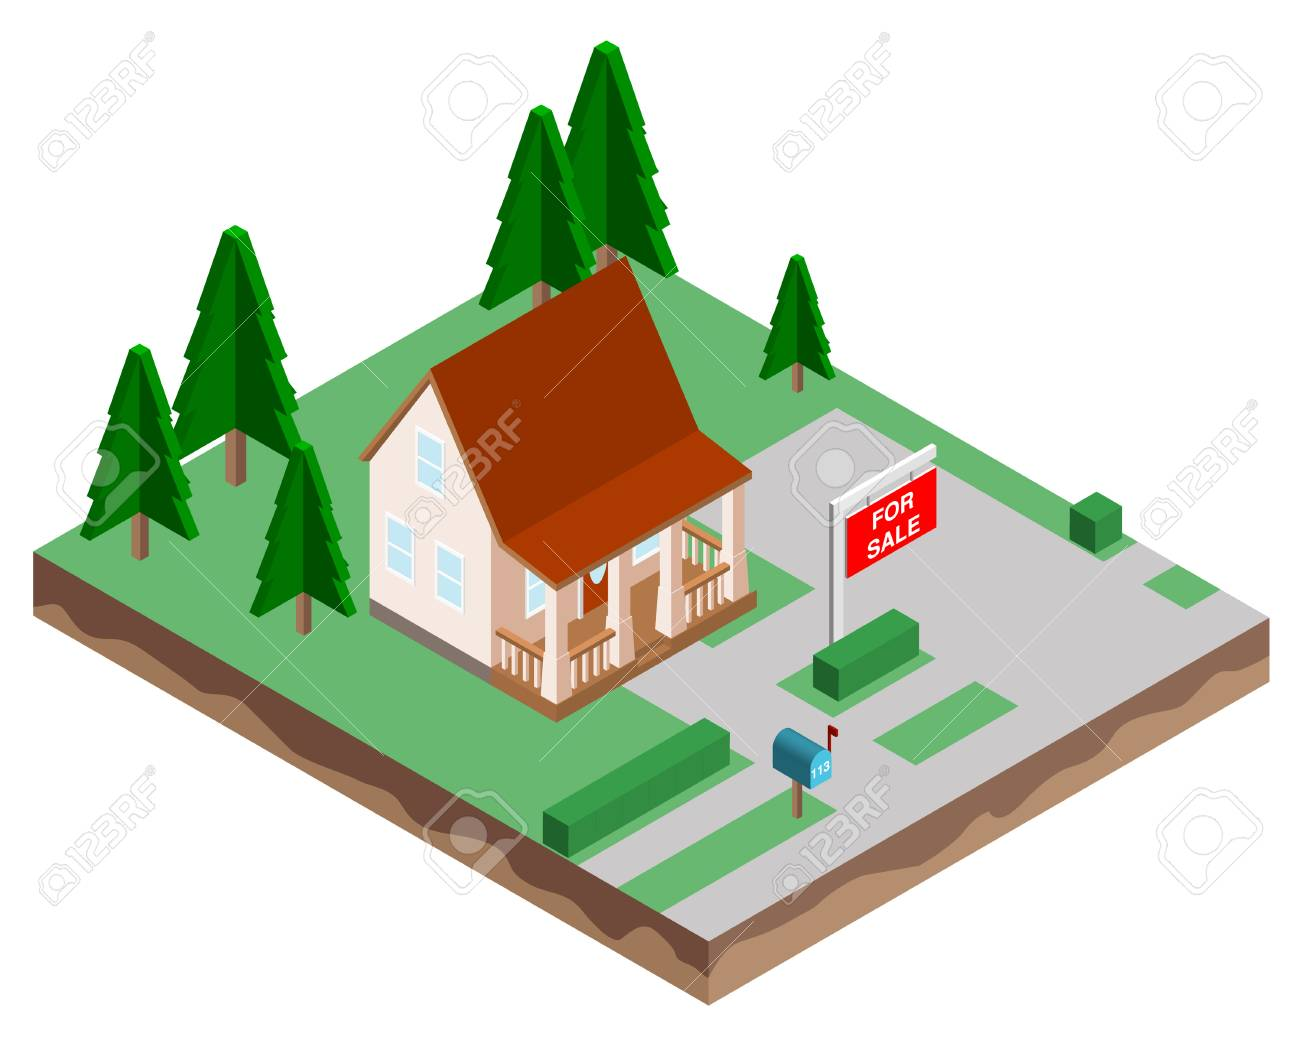 Buying a new home. The house for sale. Vector illustration in a isometric style. - 101974846